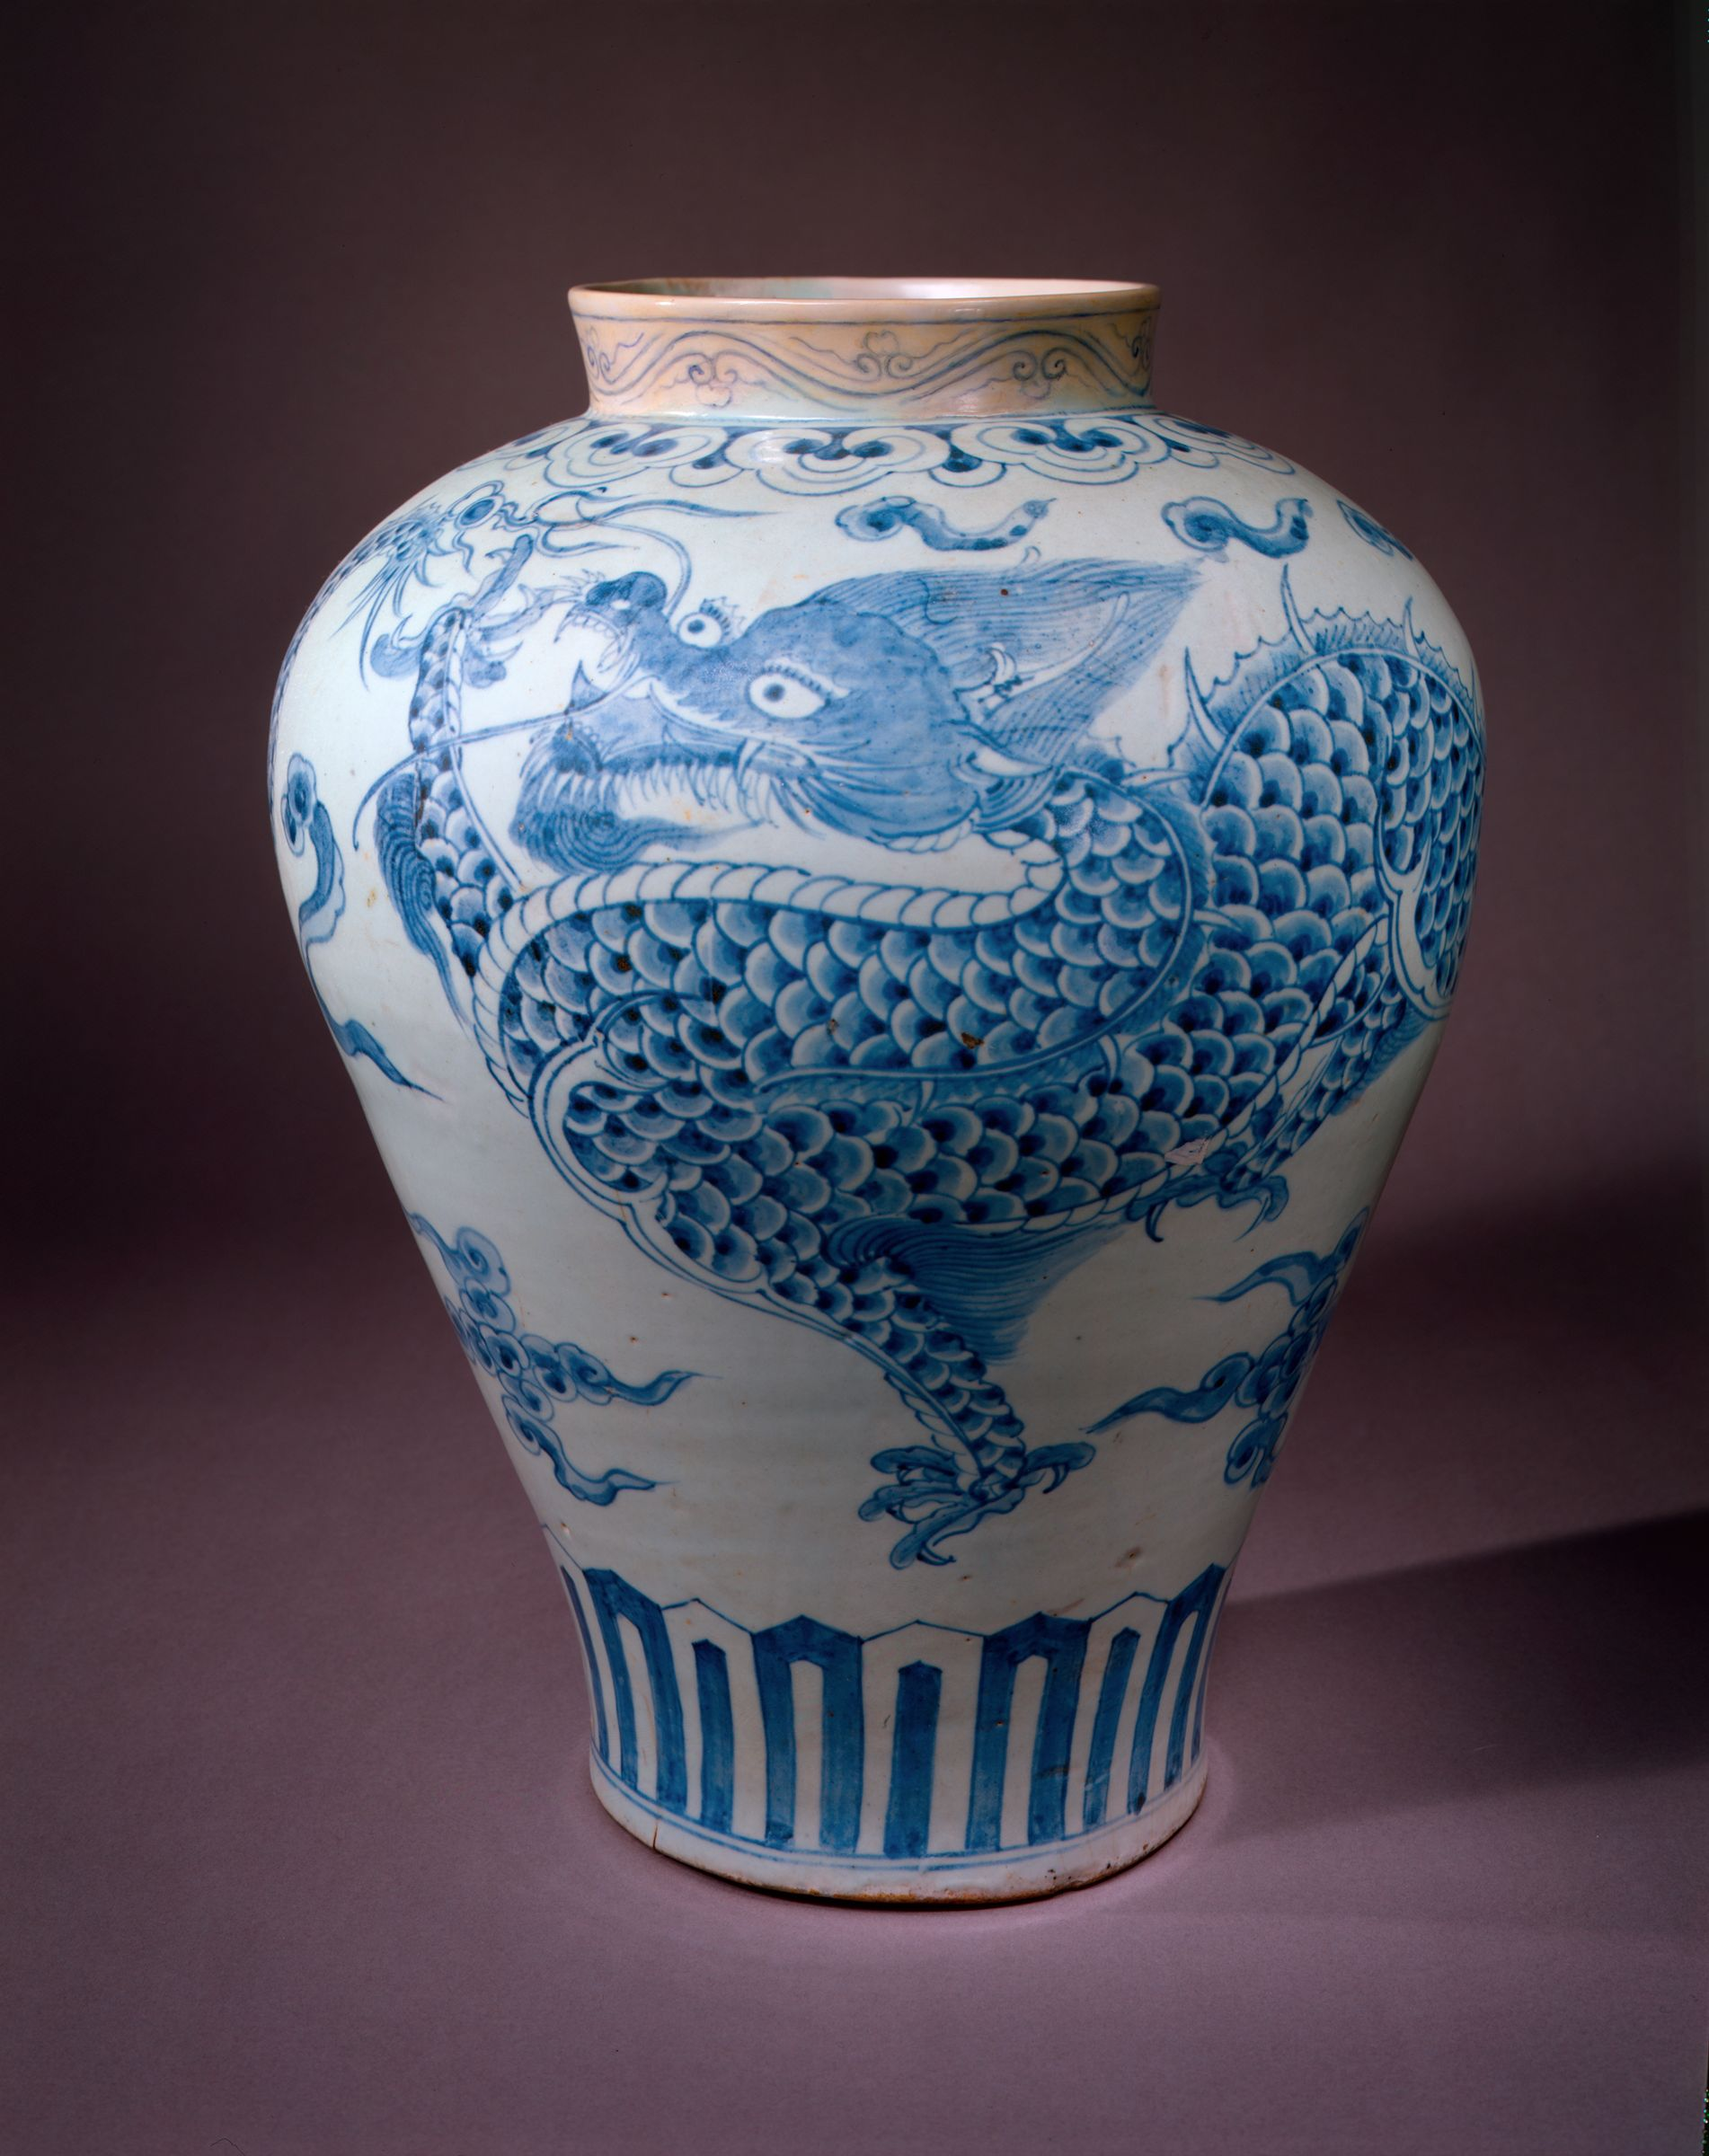 Large, Broad-Shouldered Jar With Decoration Of Two Striding Dragons, Each Pursuing A Flaming Jewel